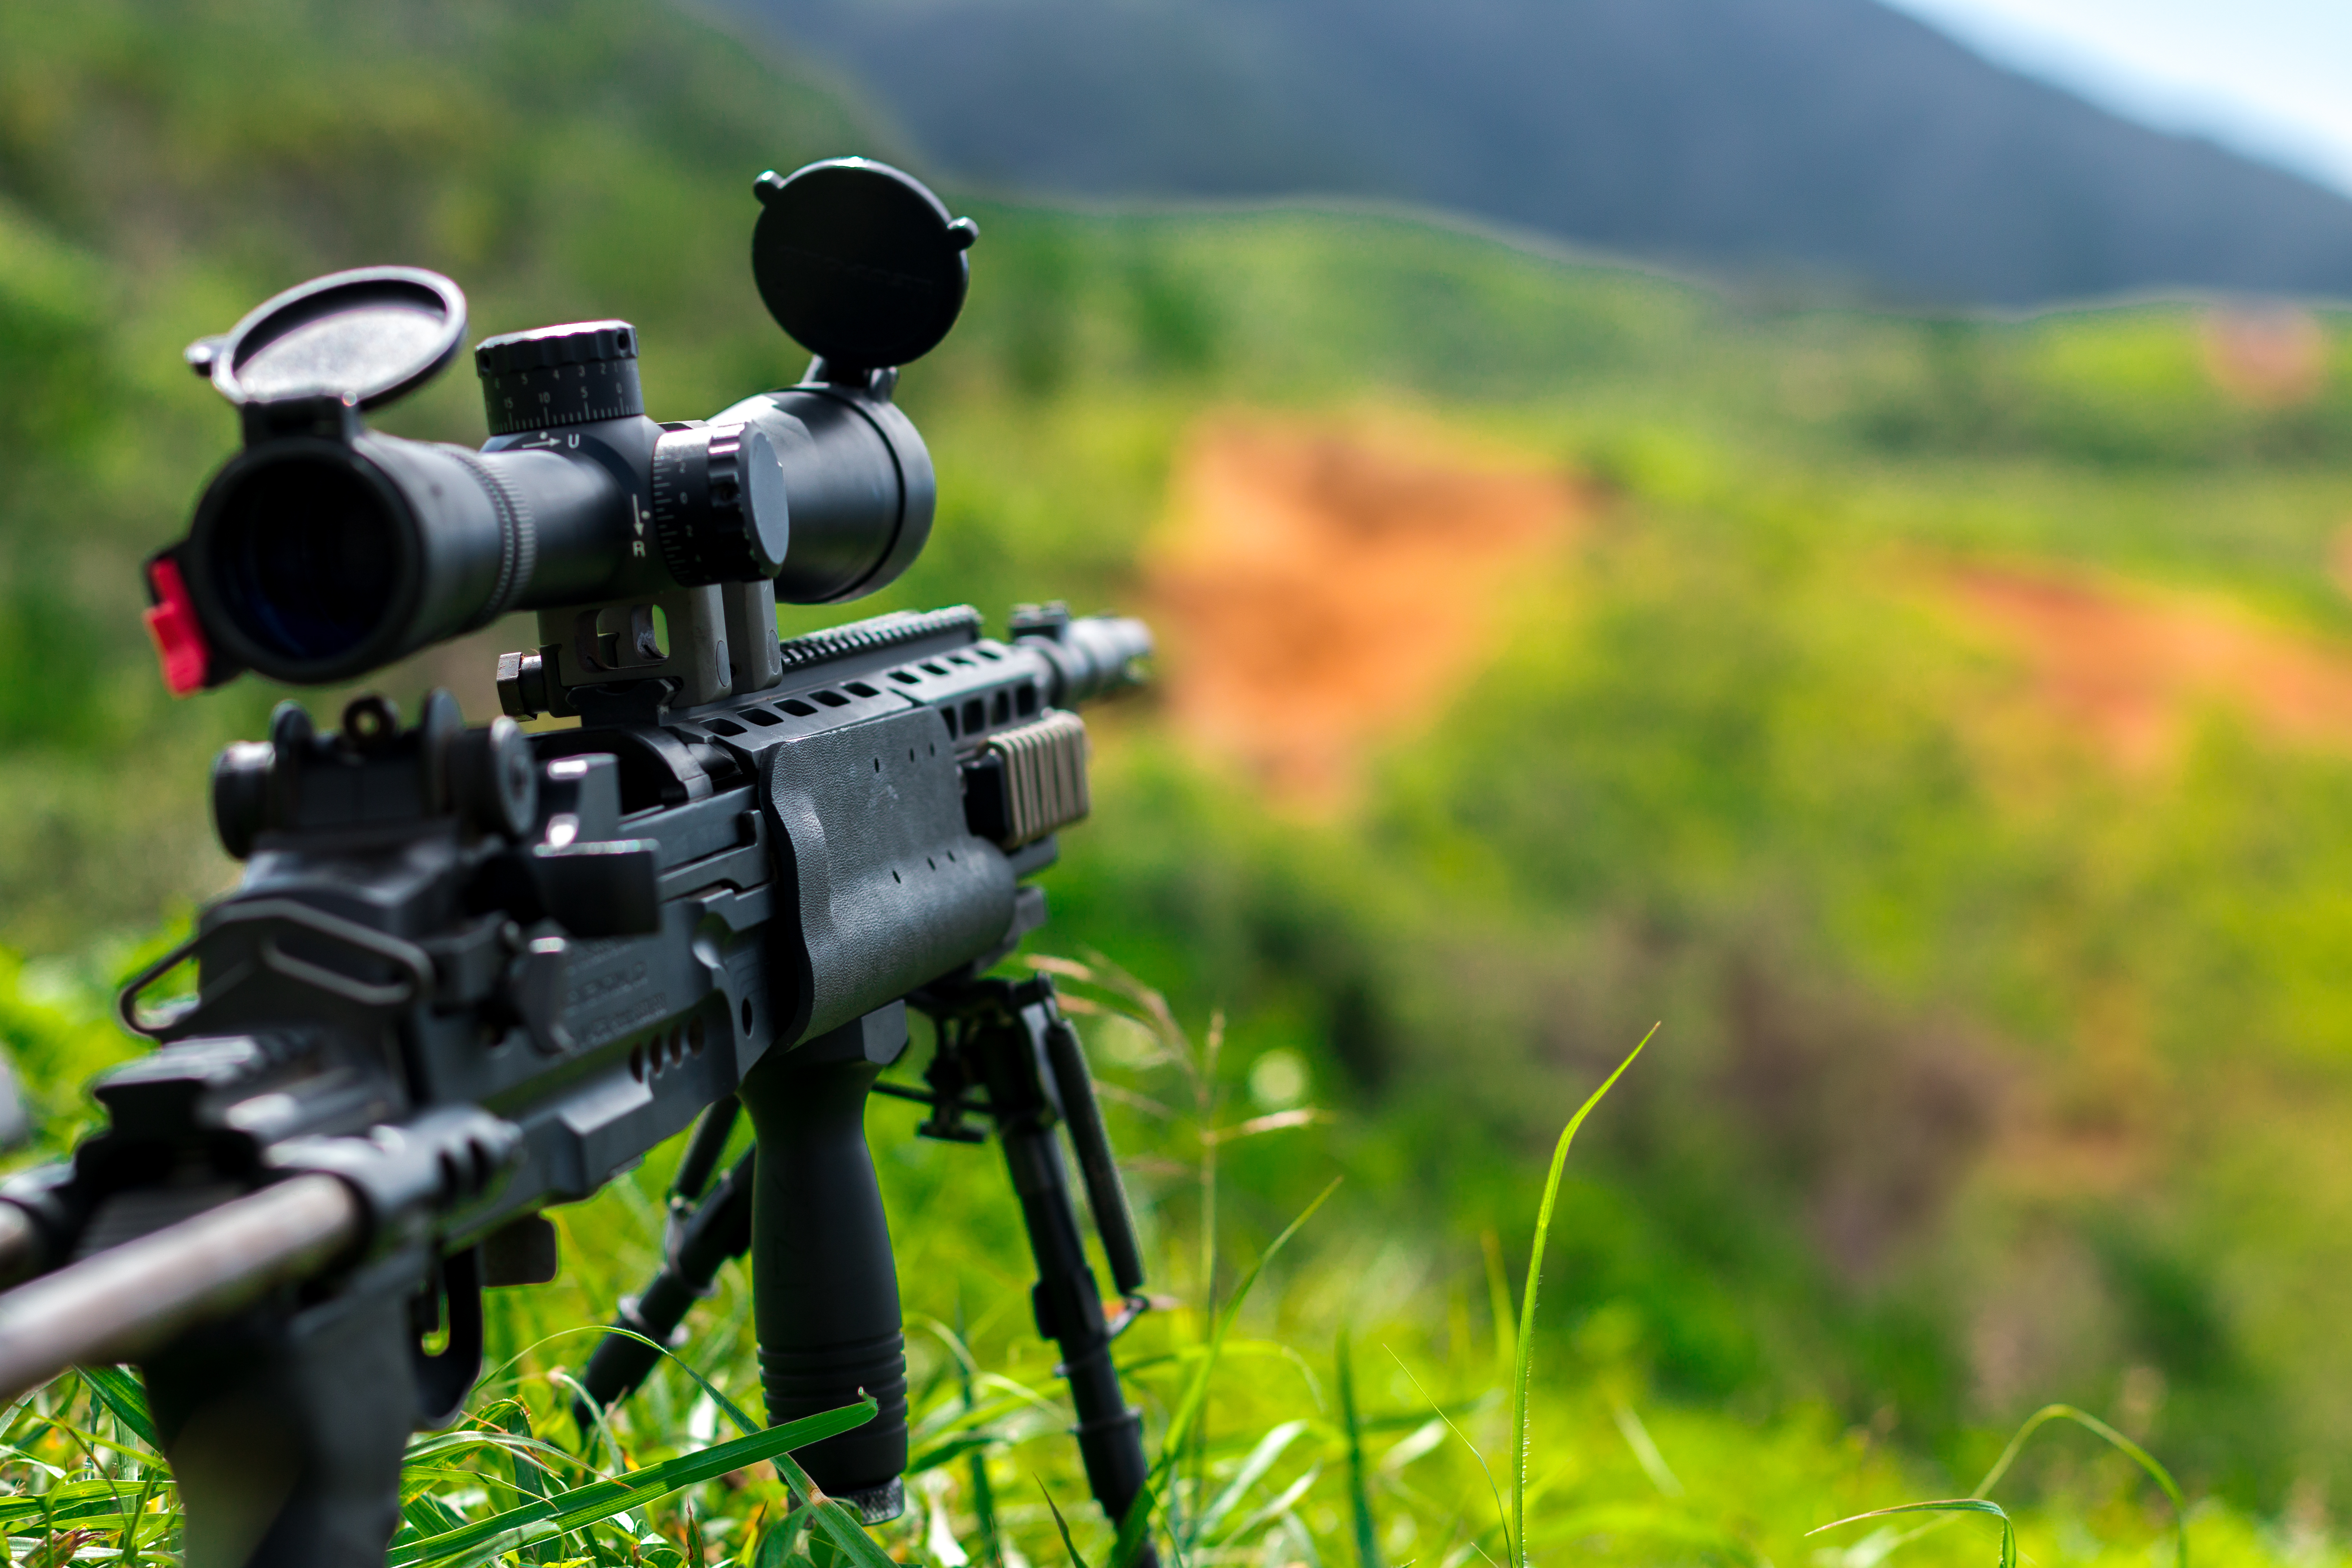 Rules Of Third P Ography Of Sniper Rifle